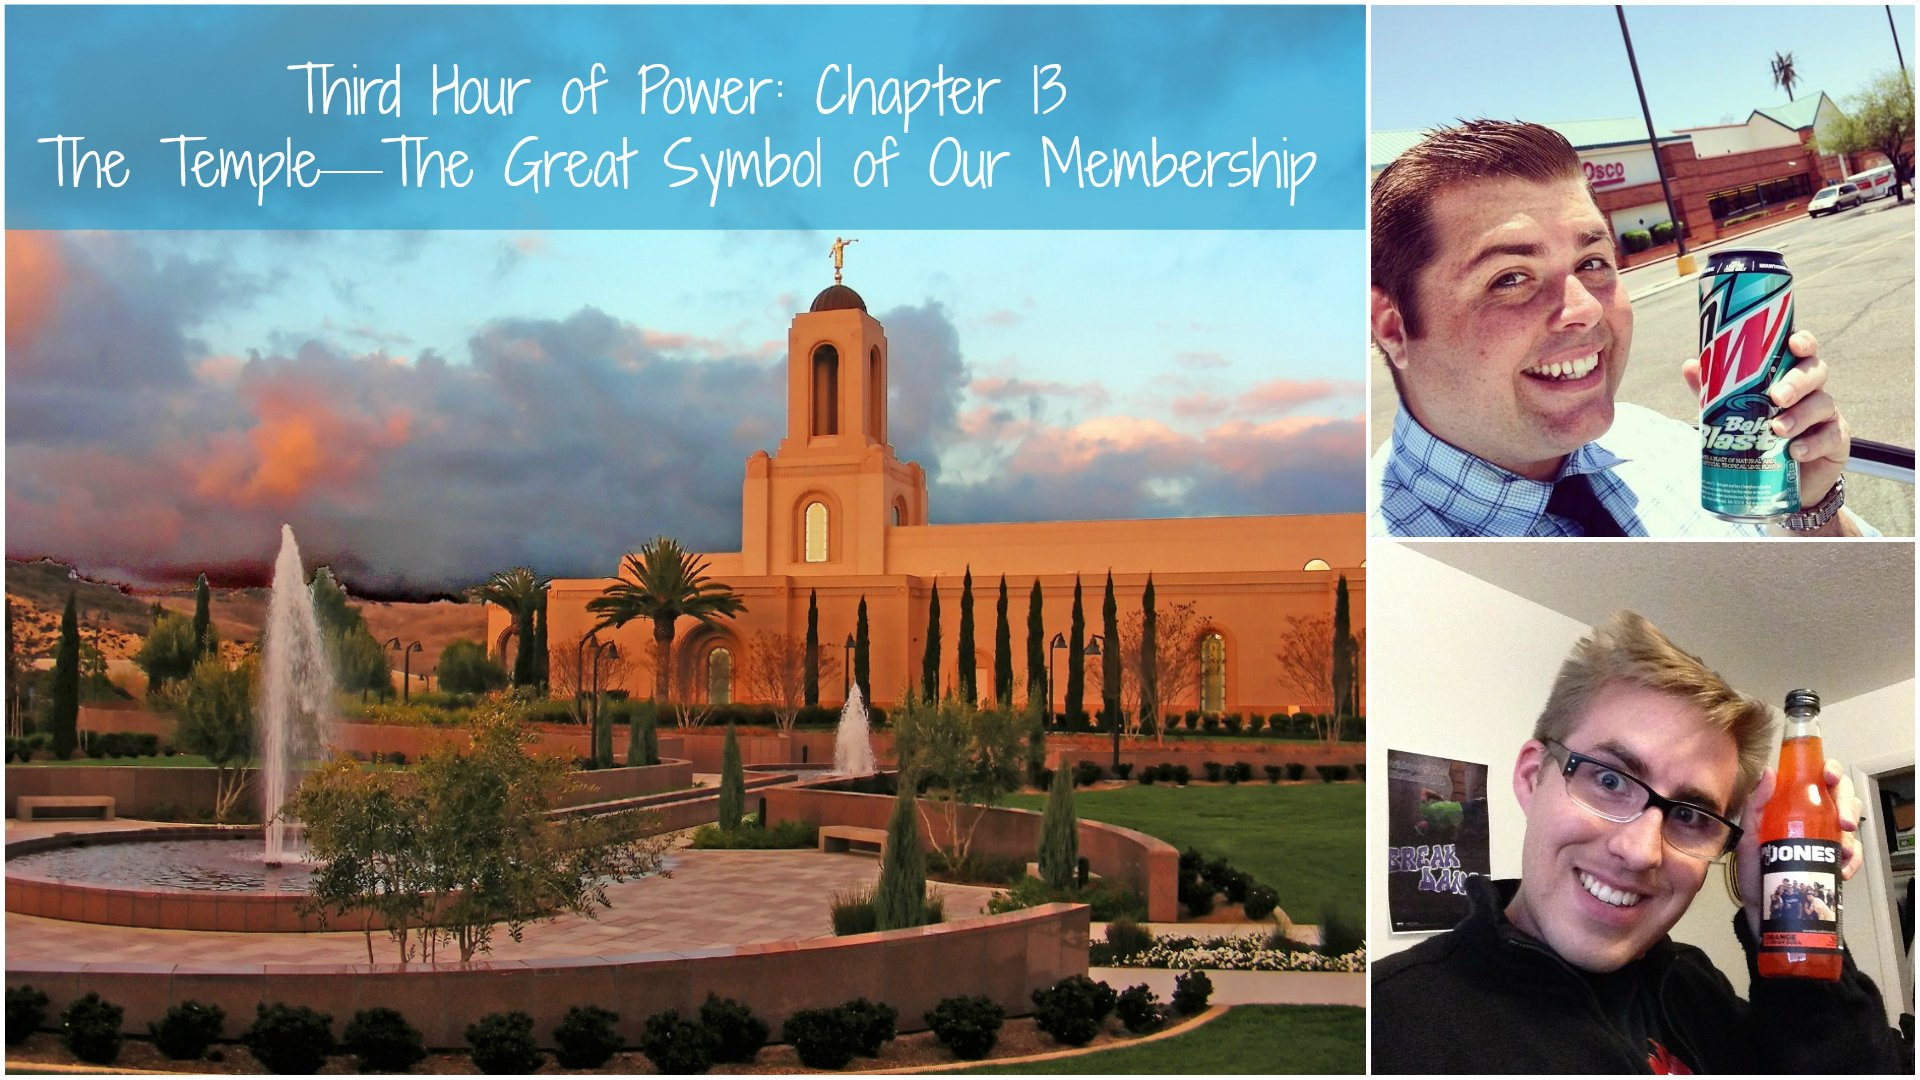 HWH Chapter 13: The Temple—The Great Symbol of Our Membership